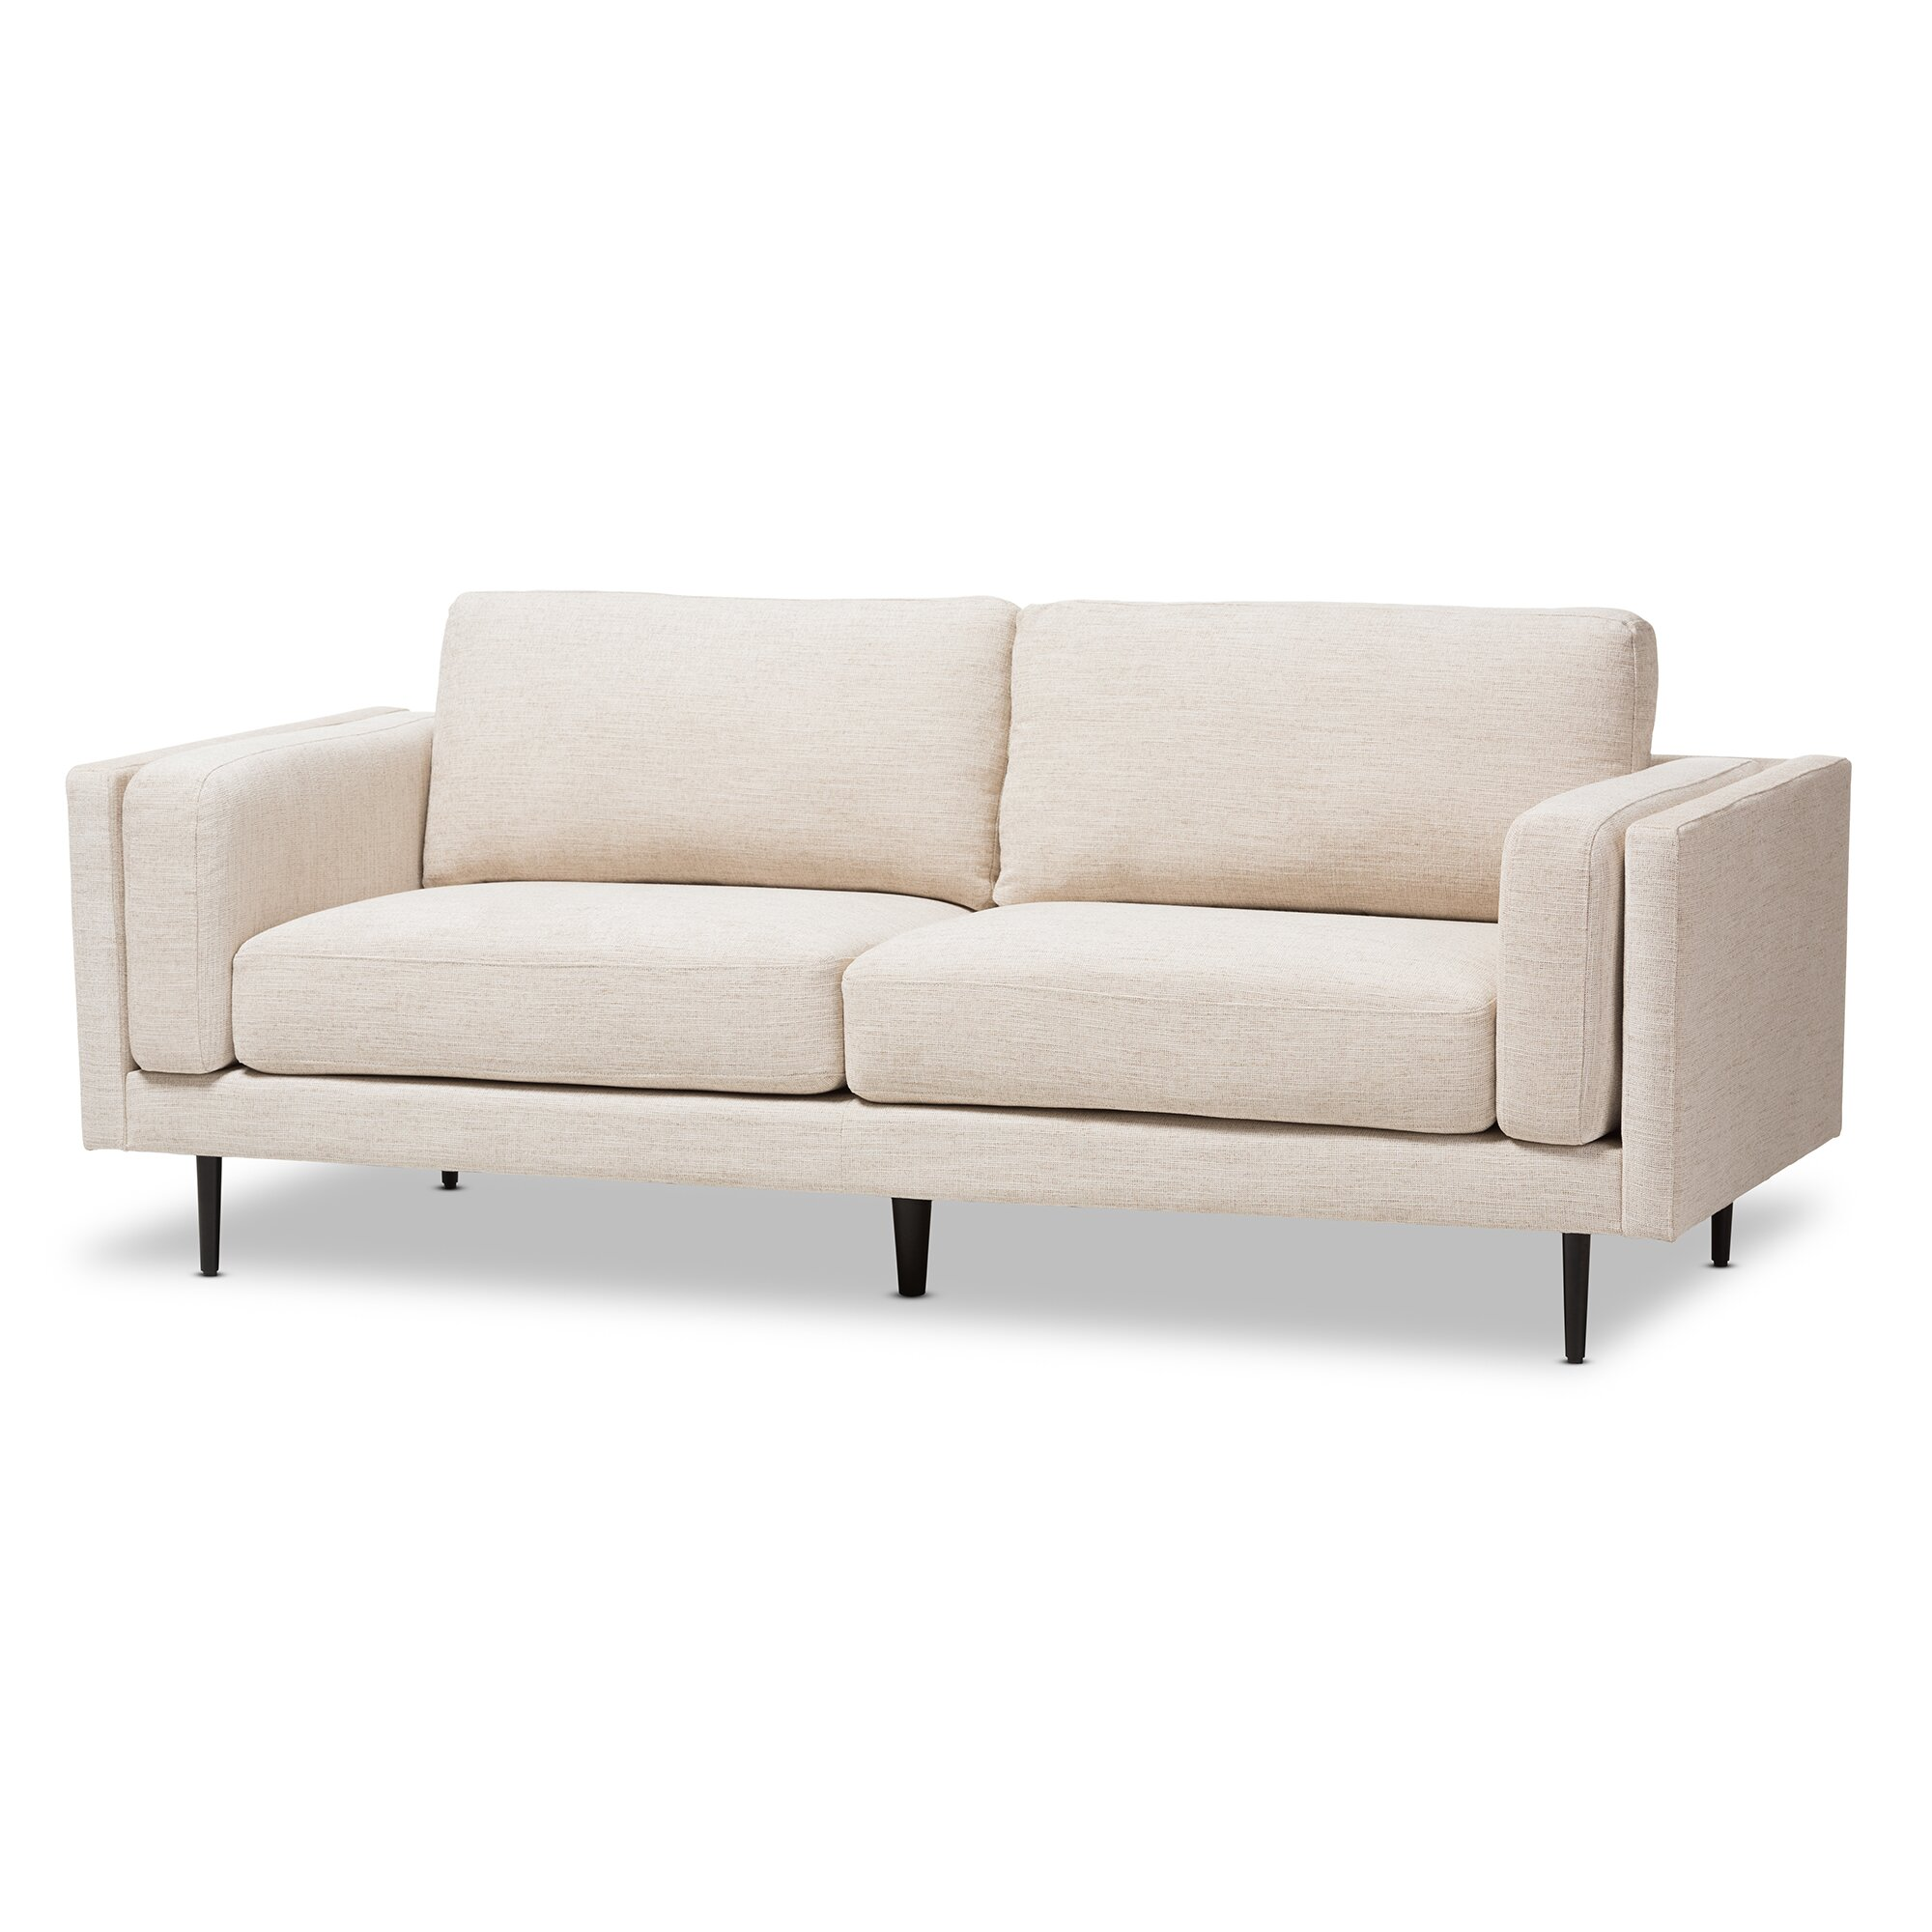 Wholesale interiors baxton studio brittany retro mid century sofa wayfair Retro loveseats